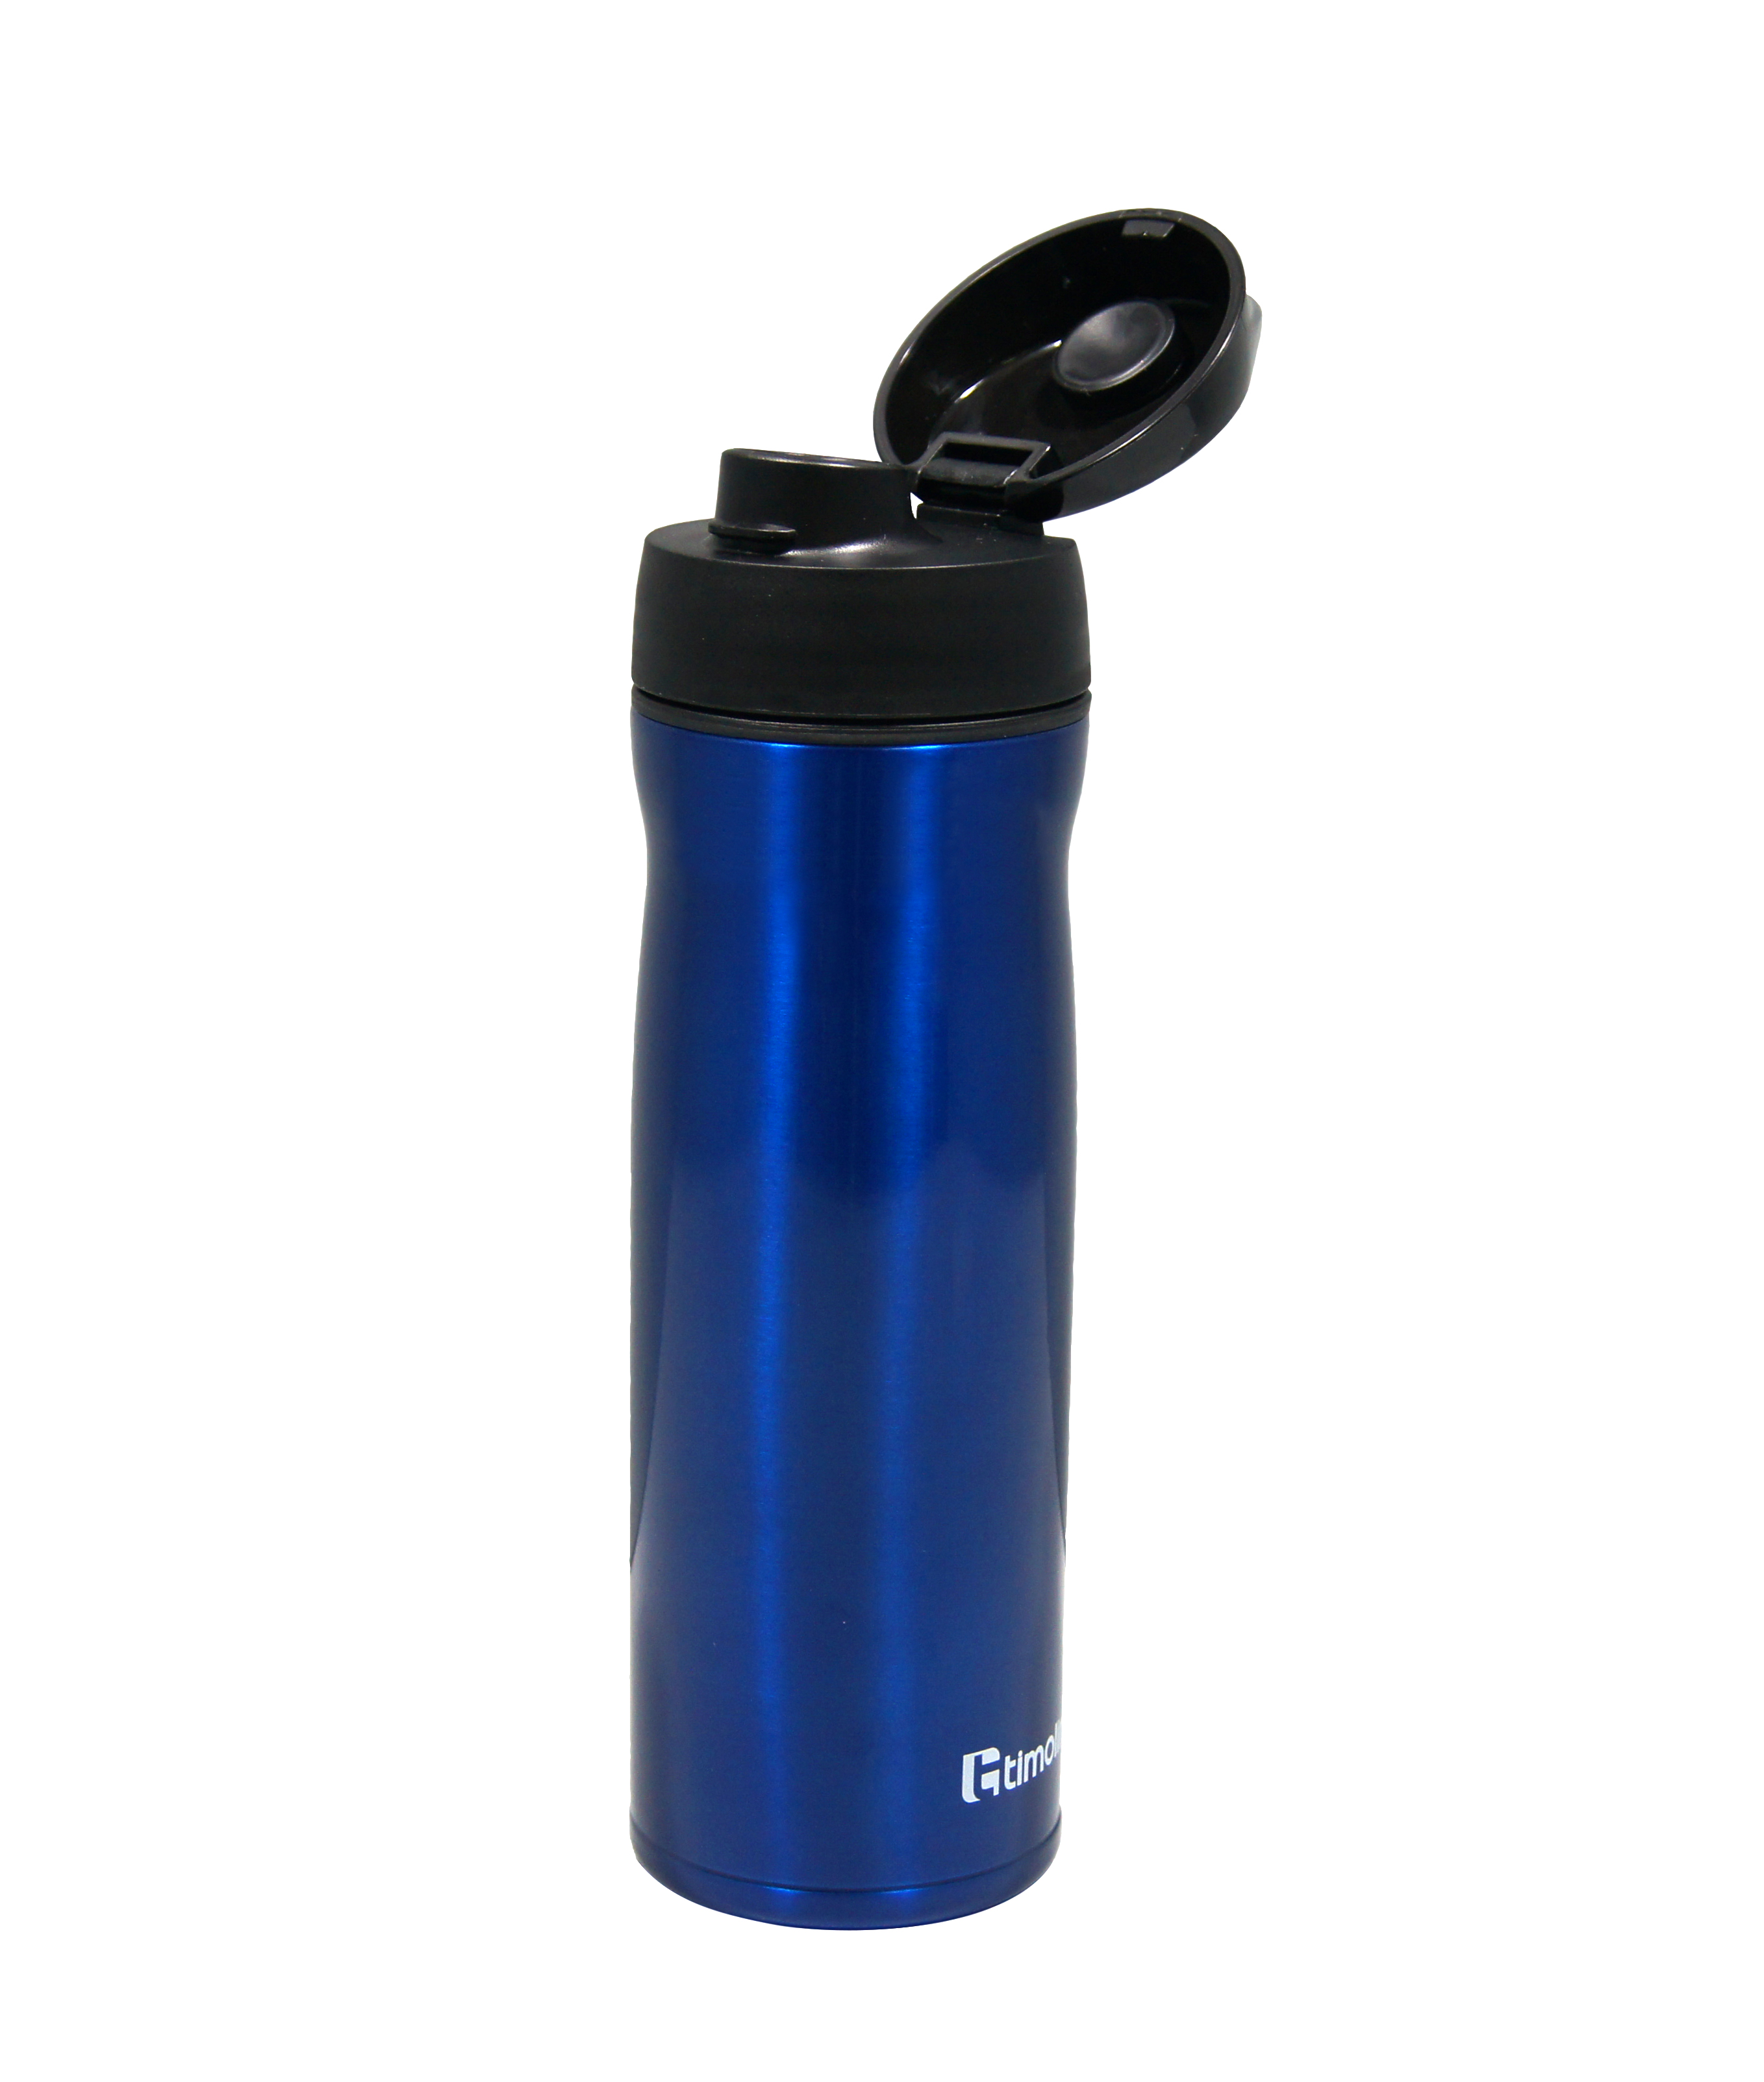 Omni line drinking bottle from Timolino made of copolyester (Source: Kraiburg TPE)